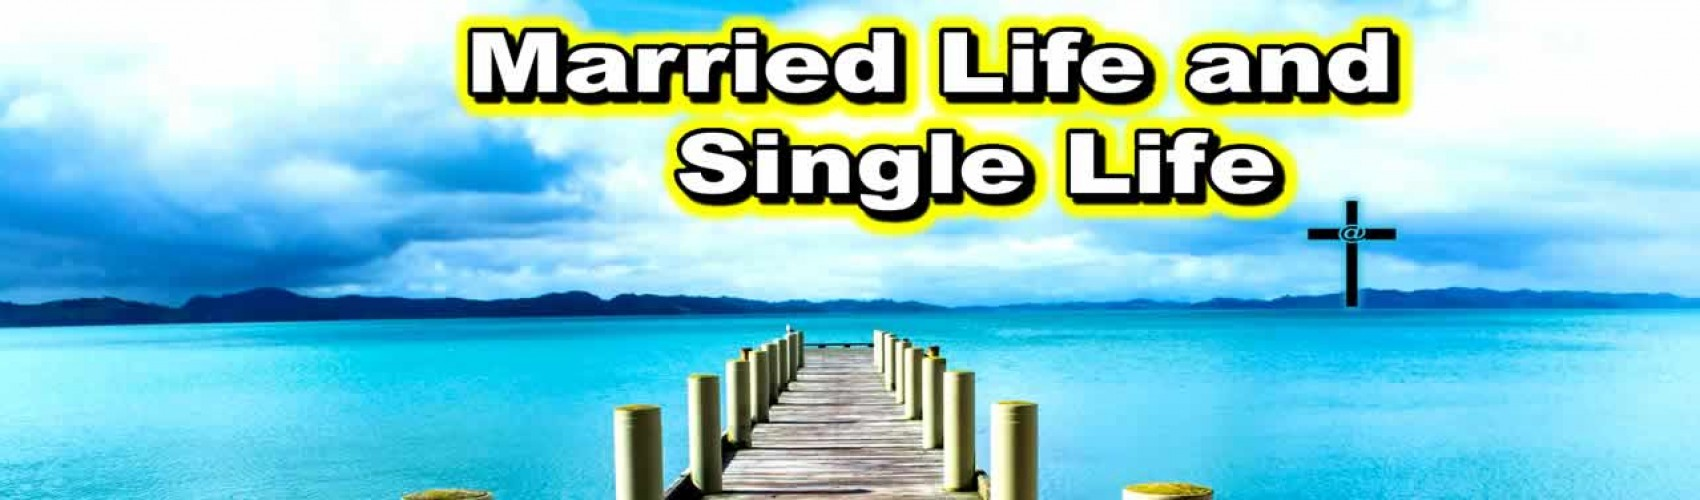 50 married and lonely dating sites